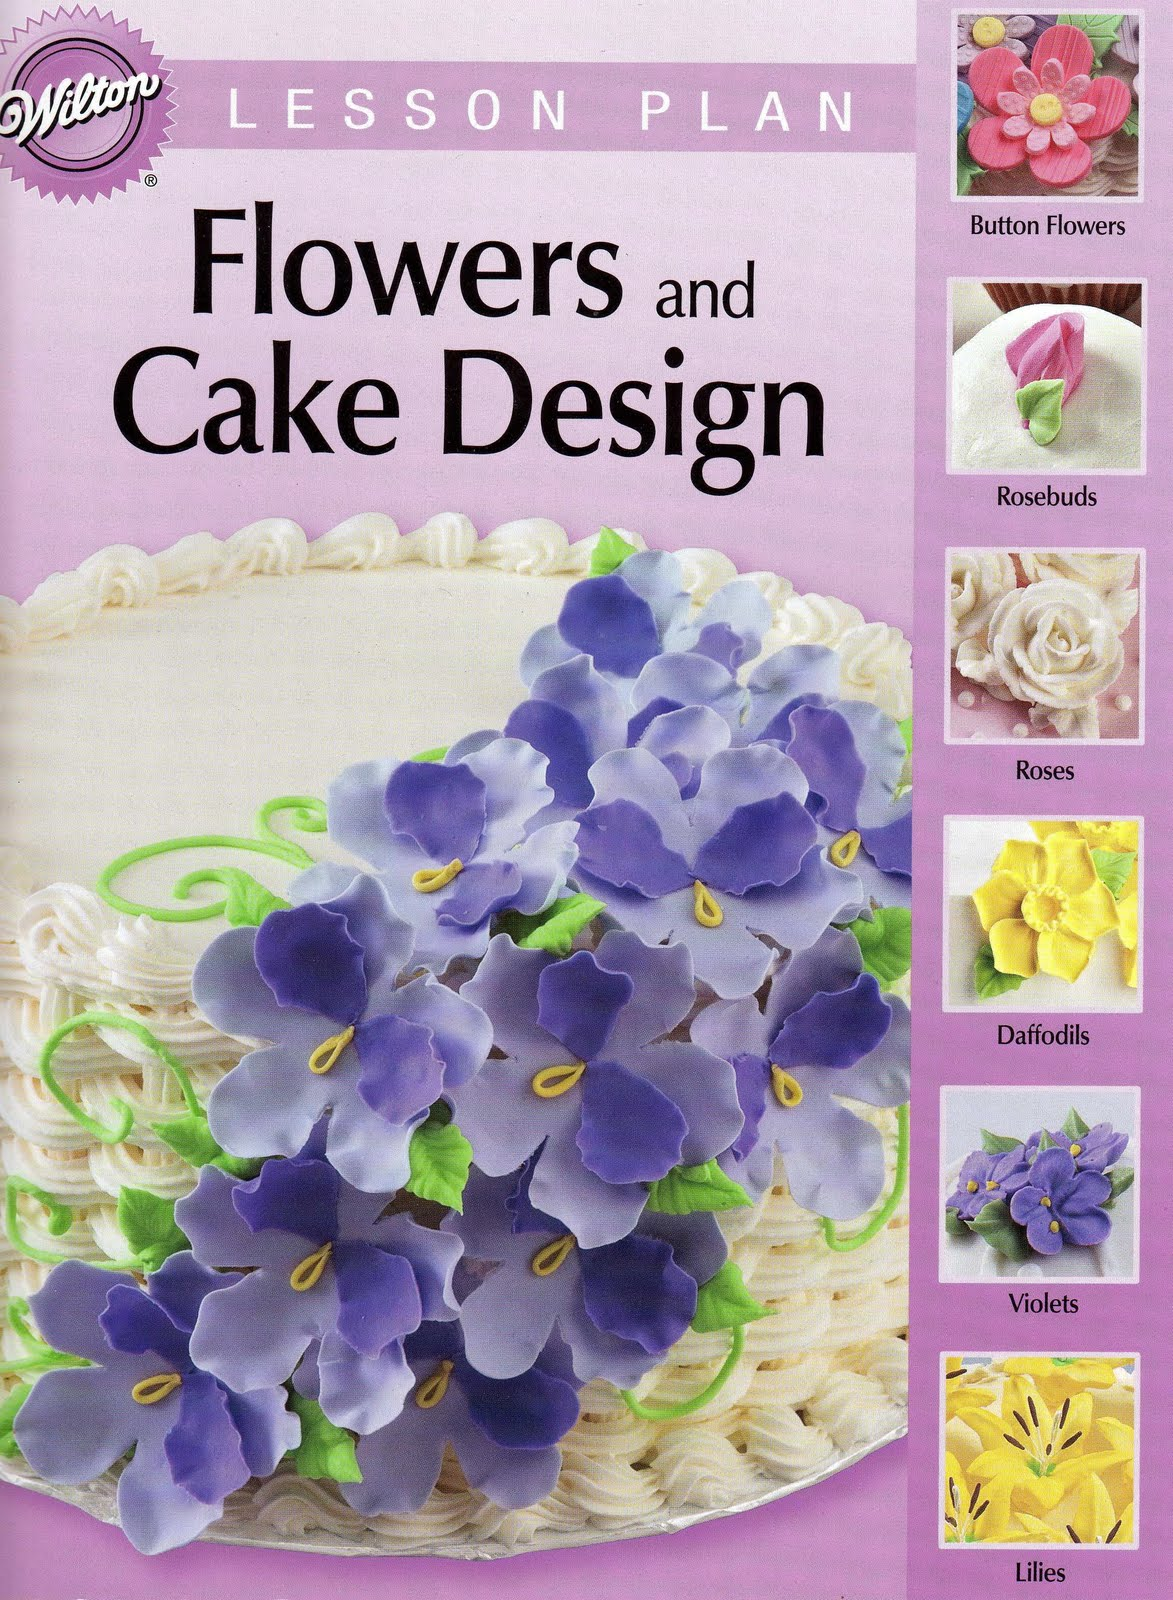 Wilton Cake Decorating Classes Uk : Beki Cook s Cake Blog: Cake Decorating Classes in the Twin ...